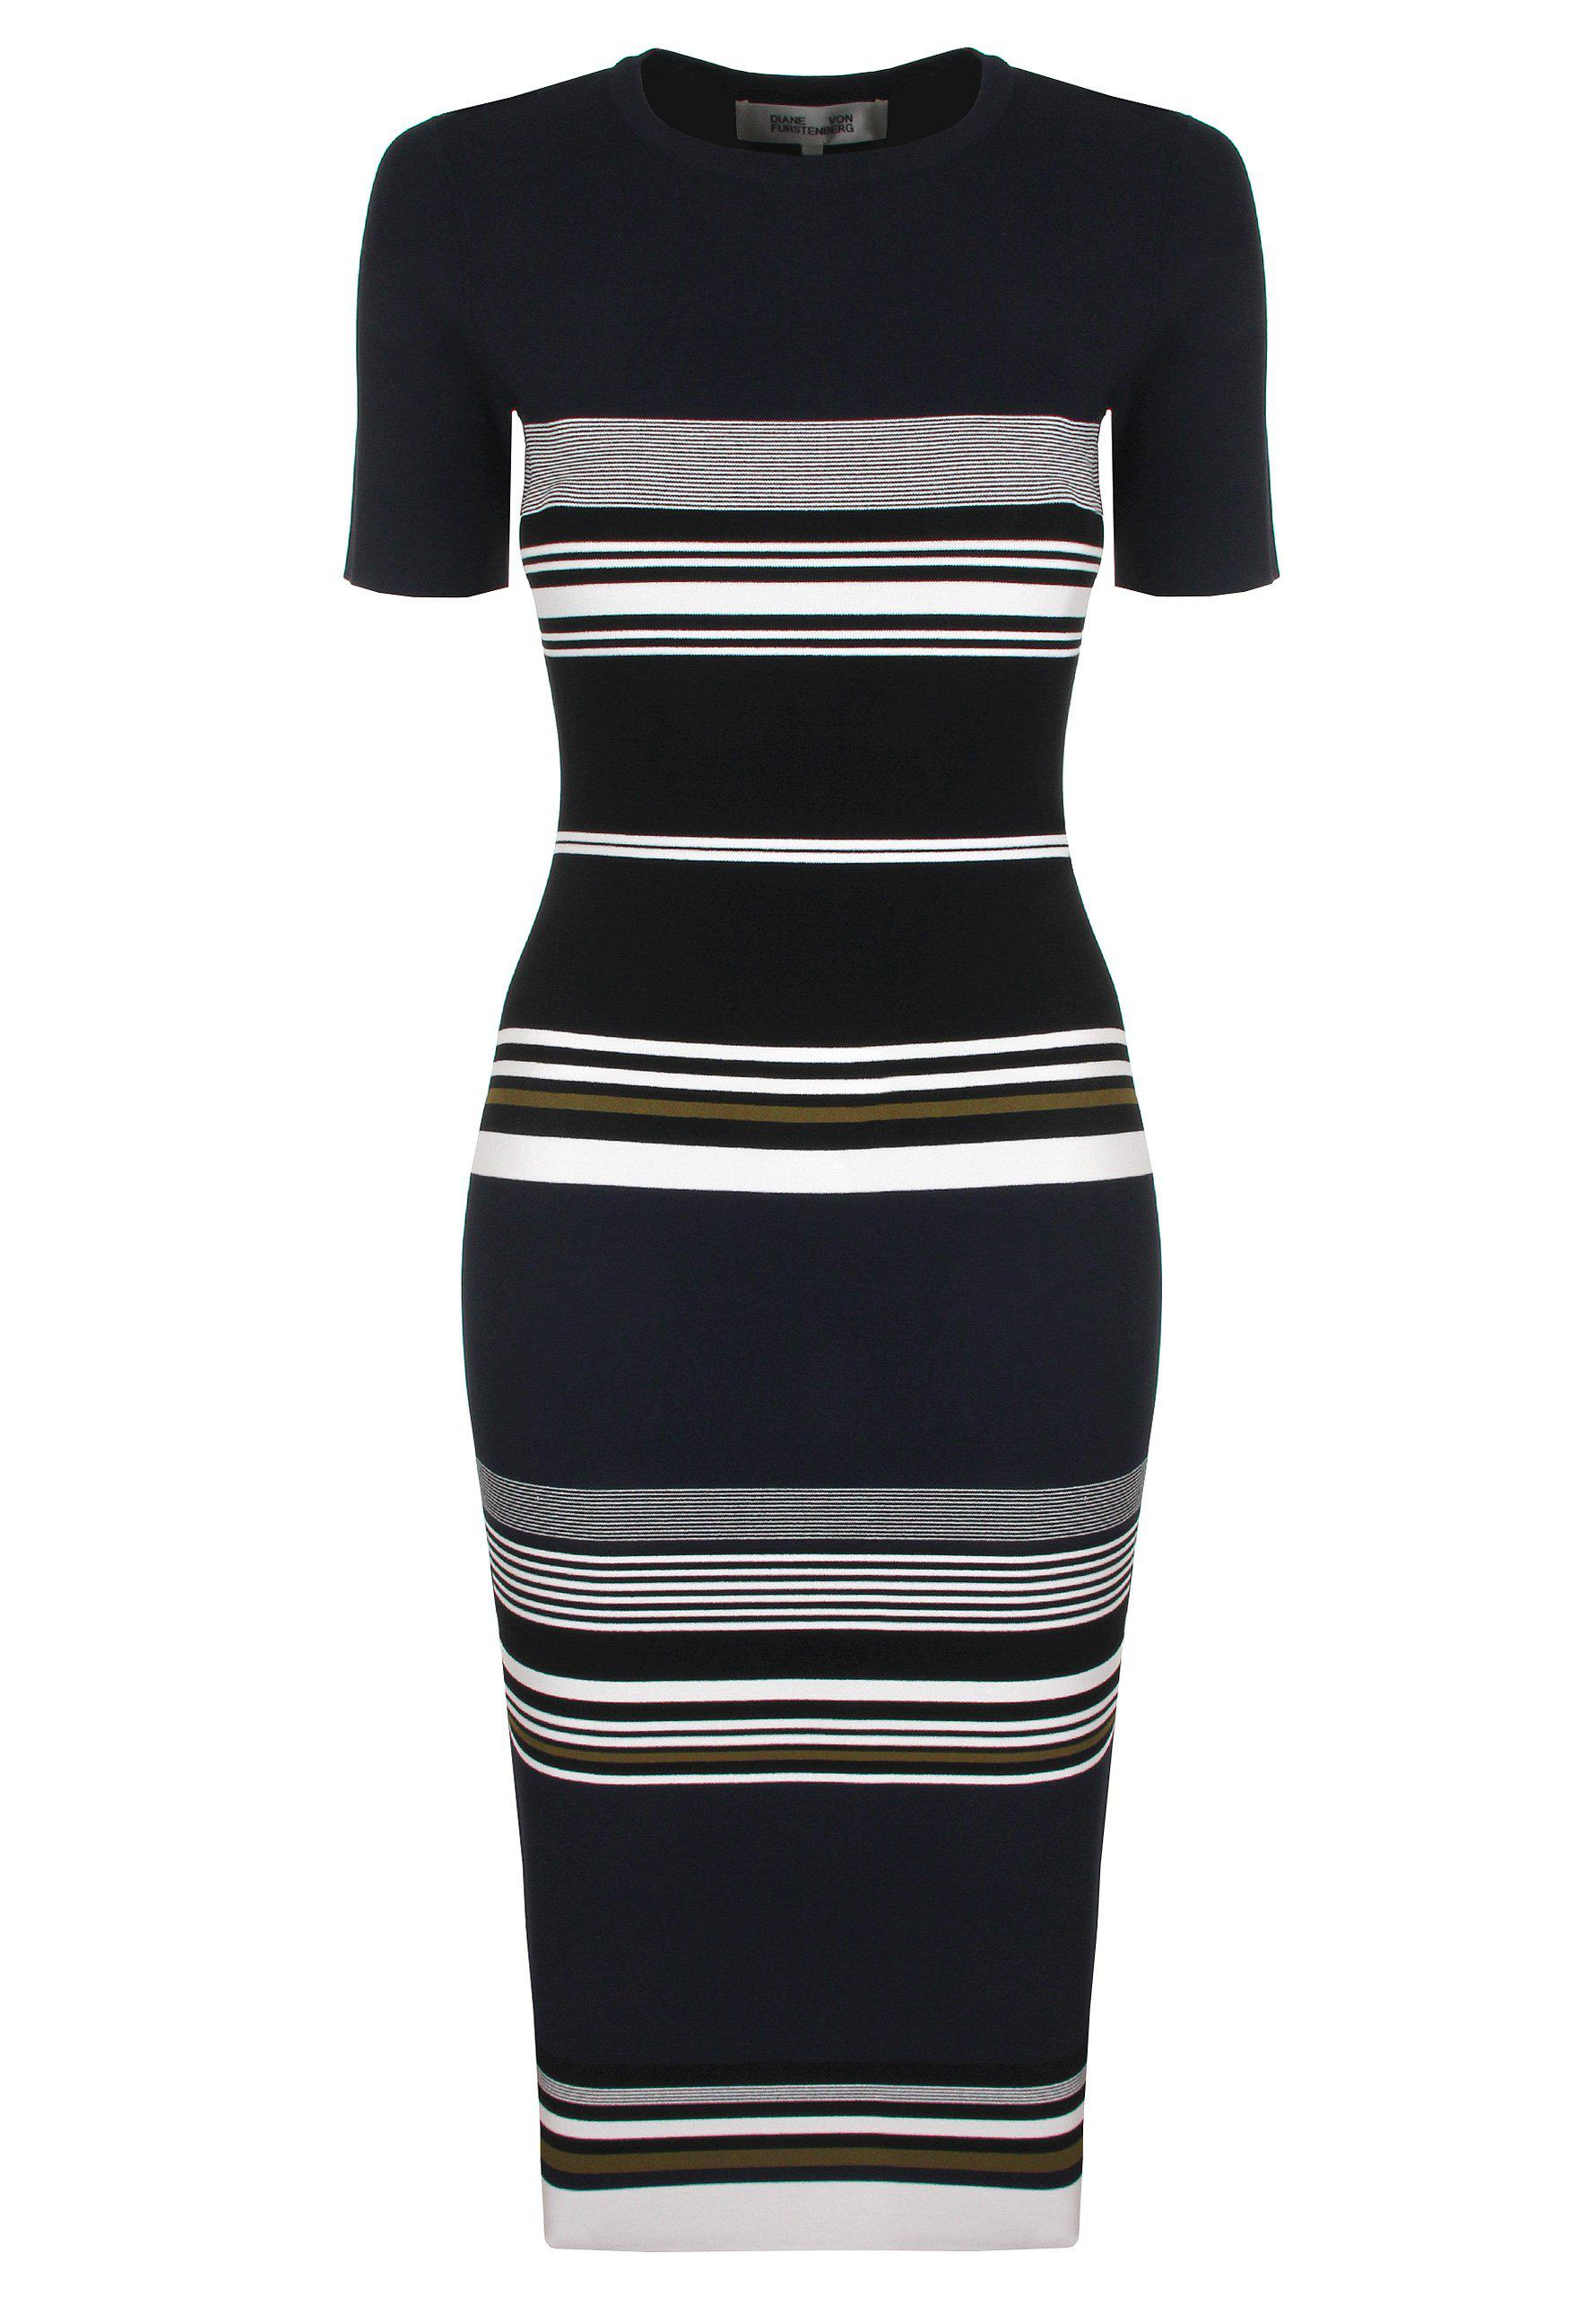 147d28fd73a1c Gallery. Previously sold at: Garment Quarter · Women's Navy Dresses